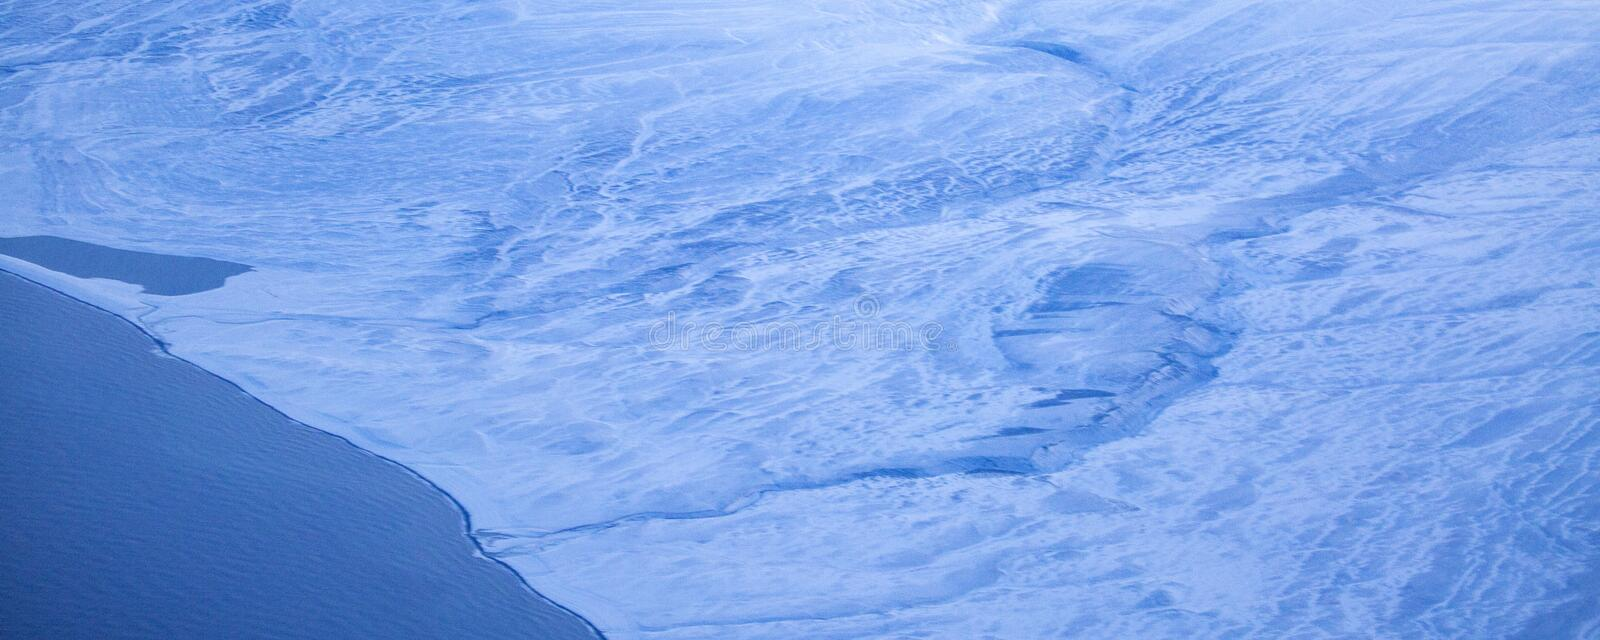 9Take an aerial view of the ice and sunrise over the bering strait.(1). The bering strait is located in the high latitudes, cold weather, many storms stock photography